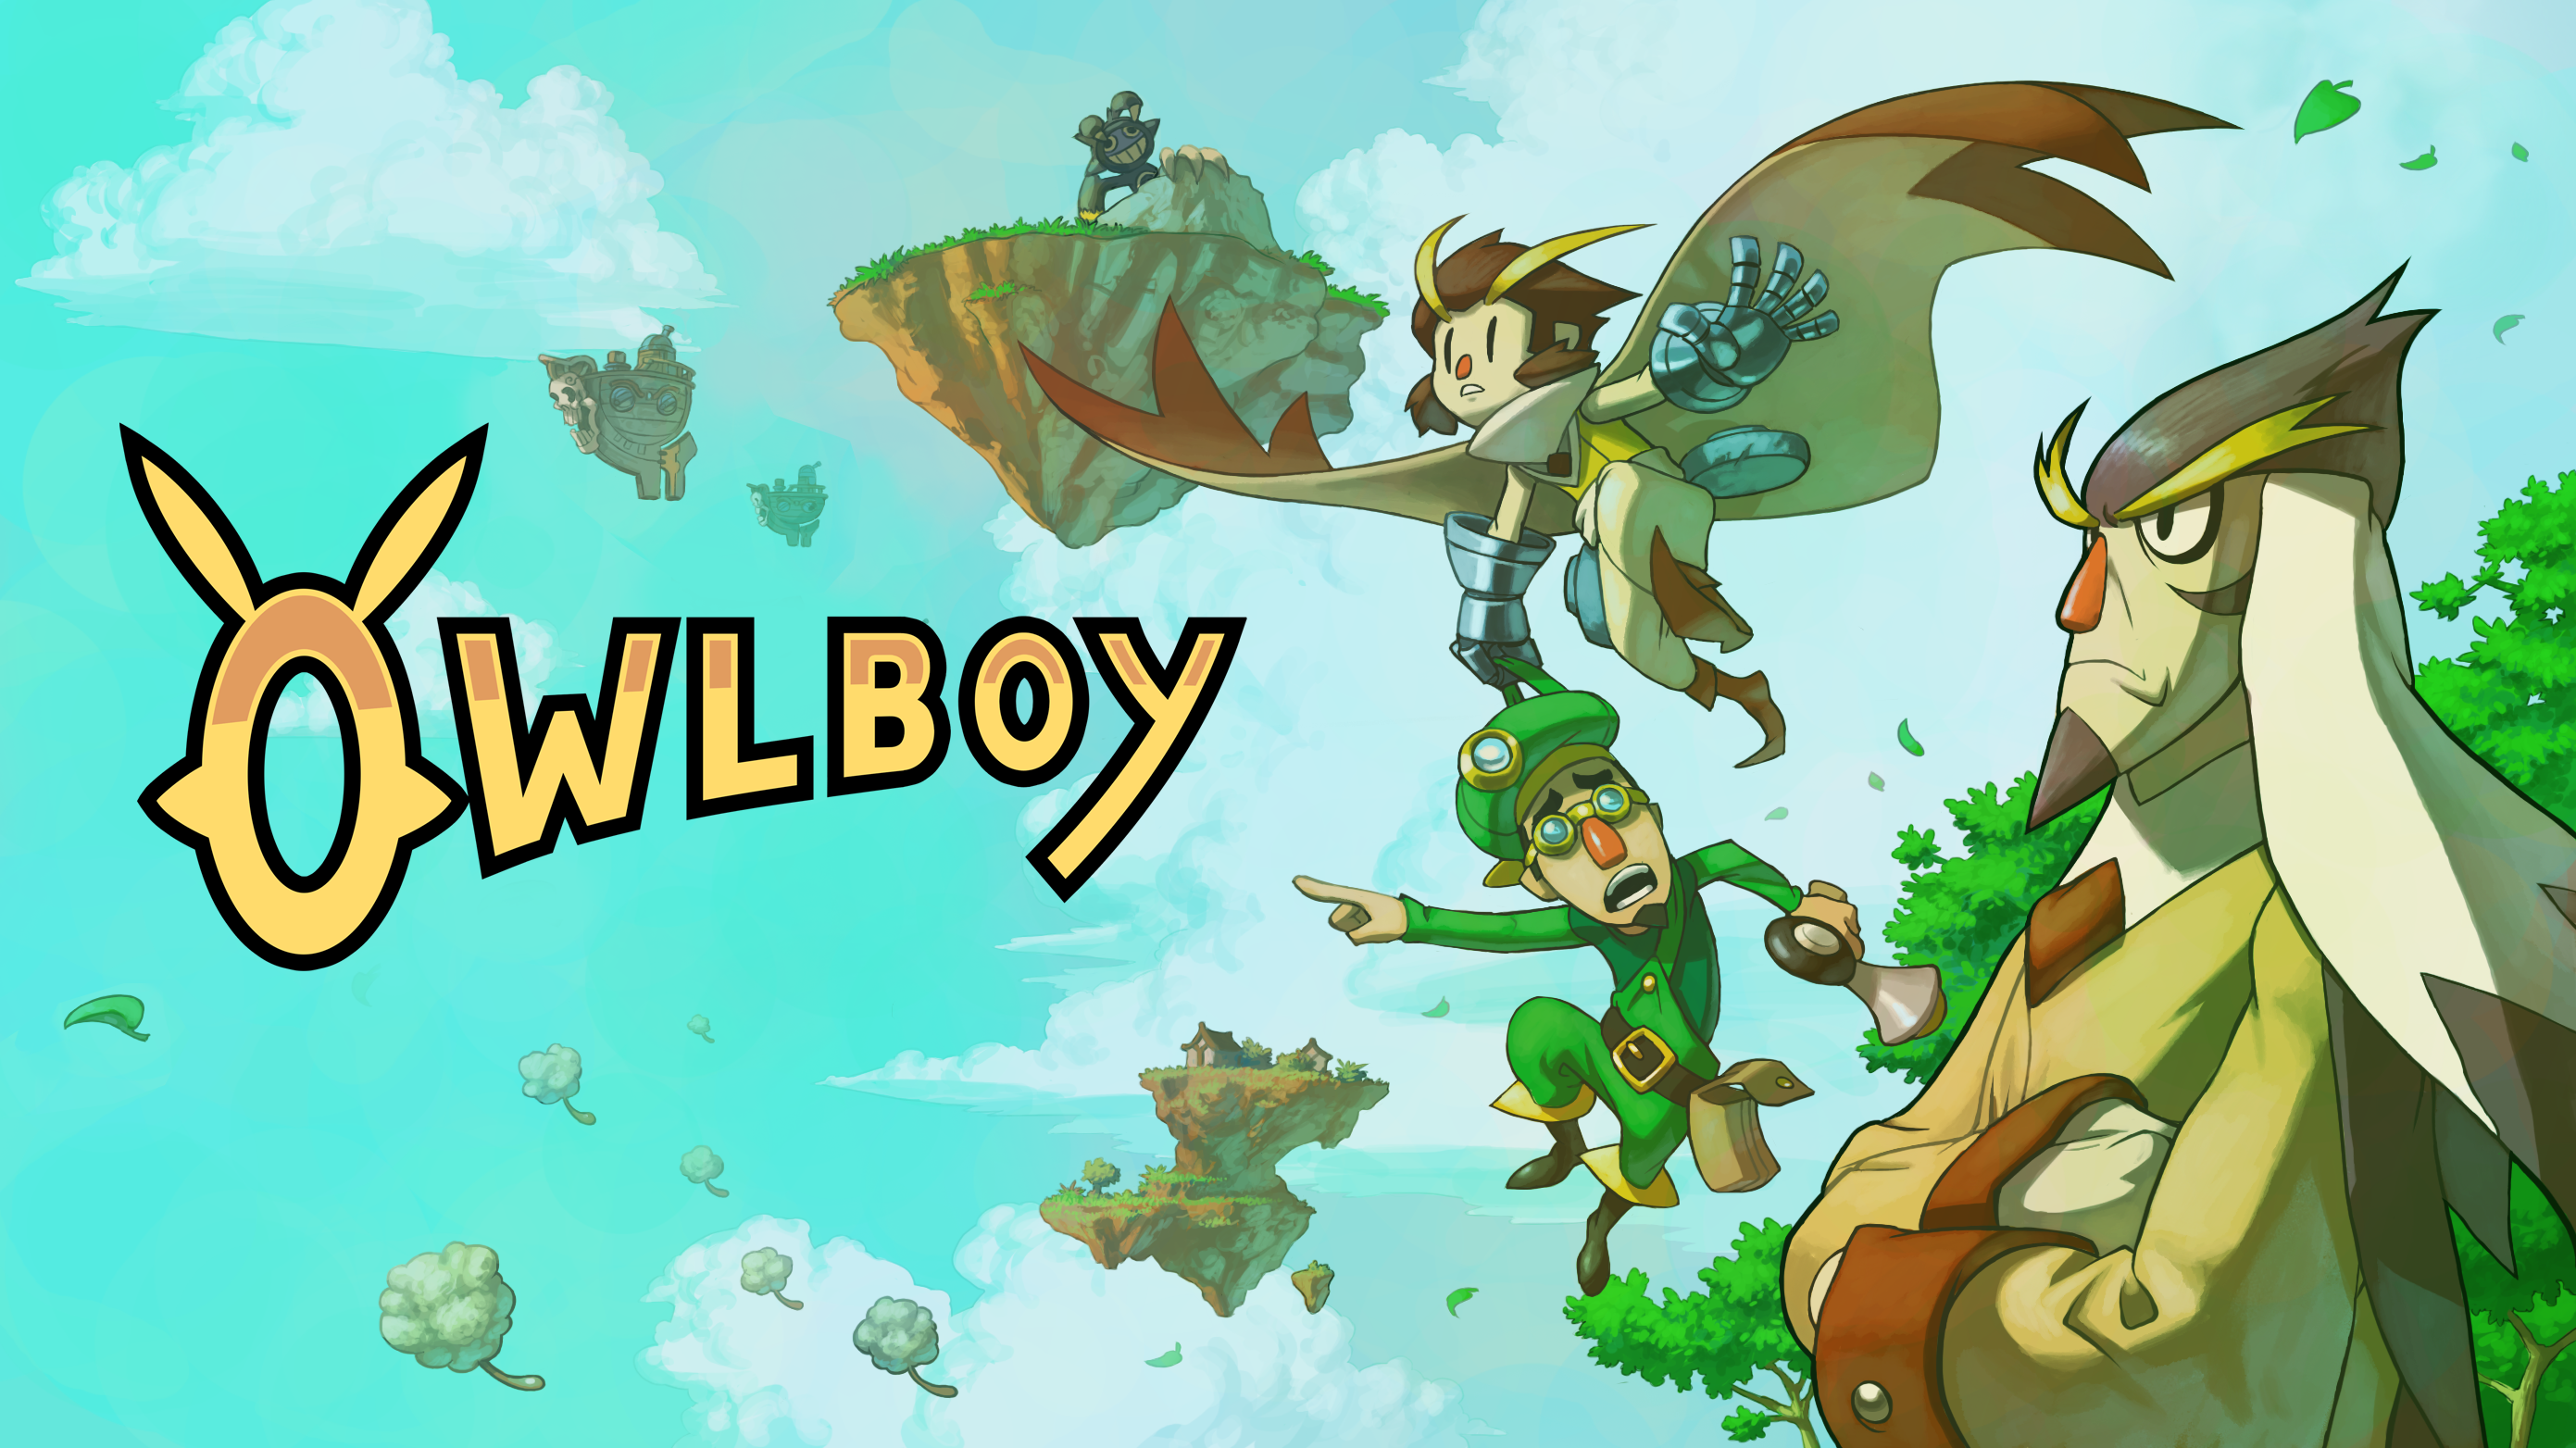 Owlboy developer will be revealing two brand new games at Gamescom